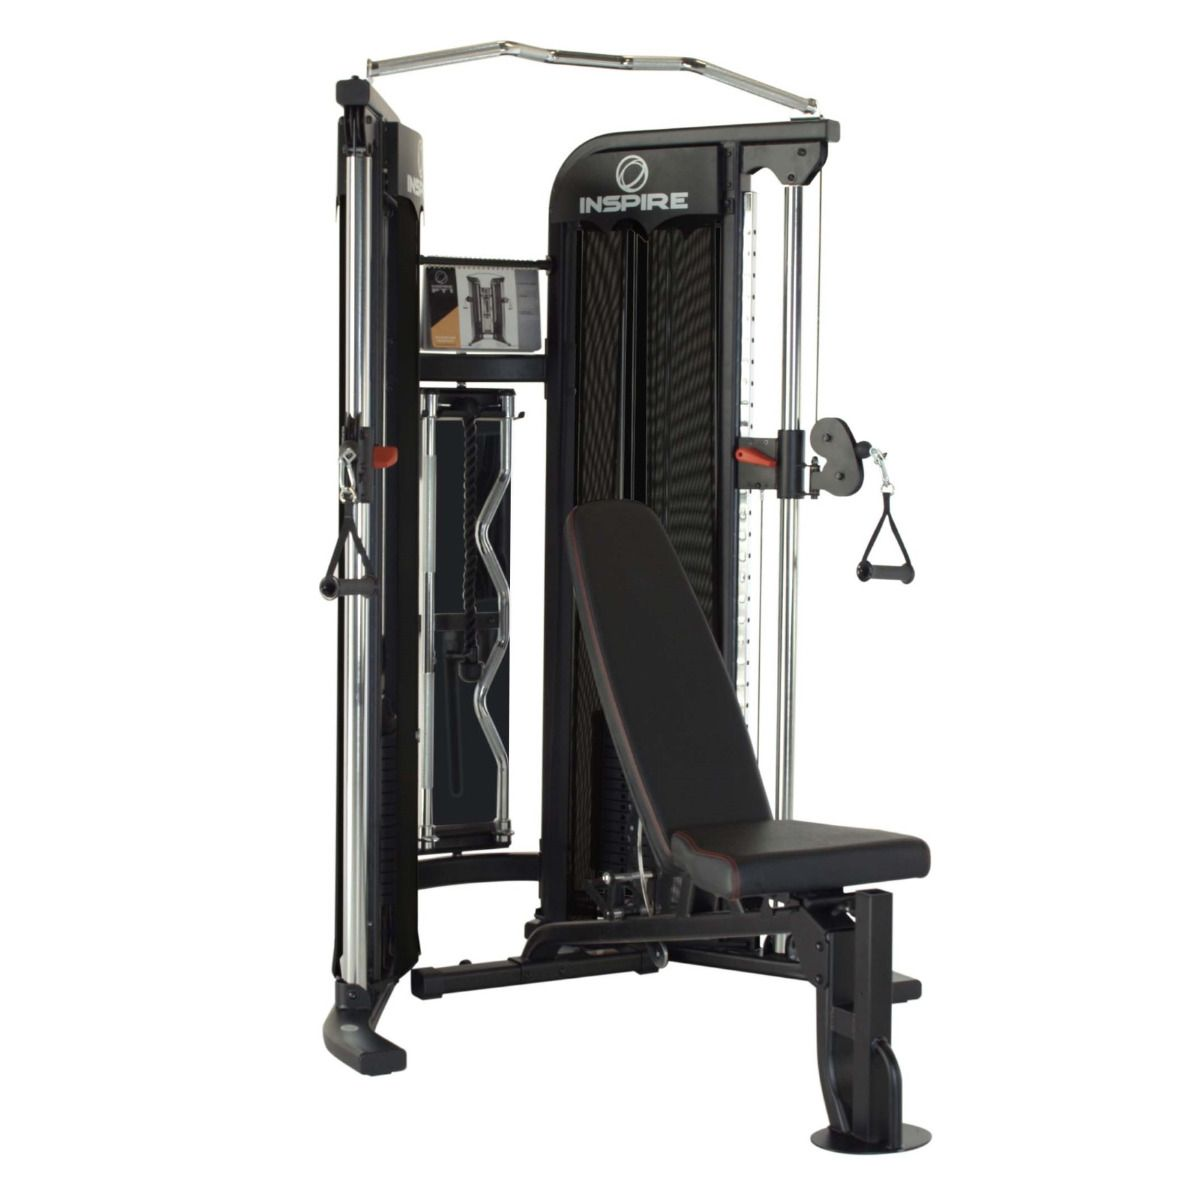 Inspire Ft1 Functional Trainer Dual Adjustable Pulley